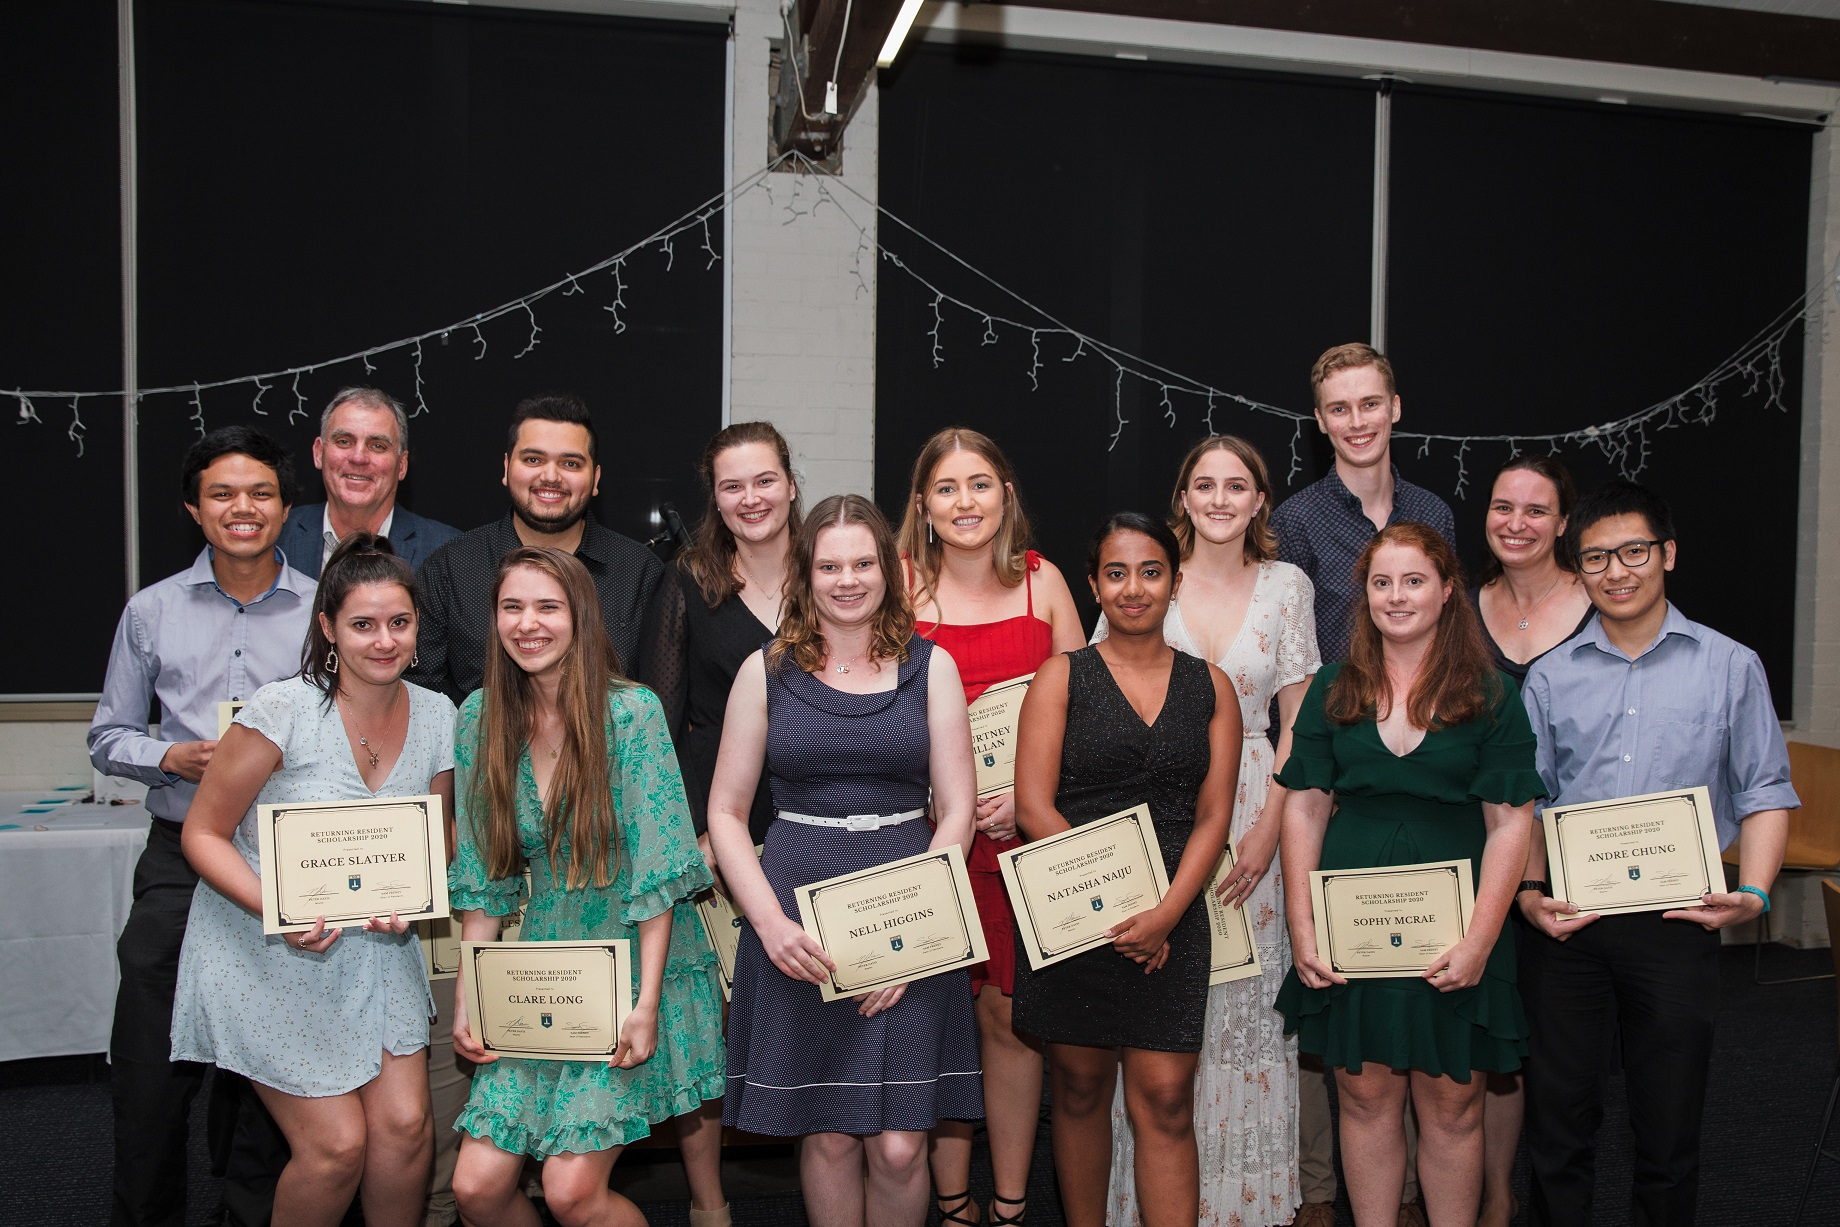 A group of student residents receive scholarships award